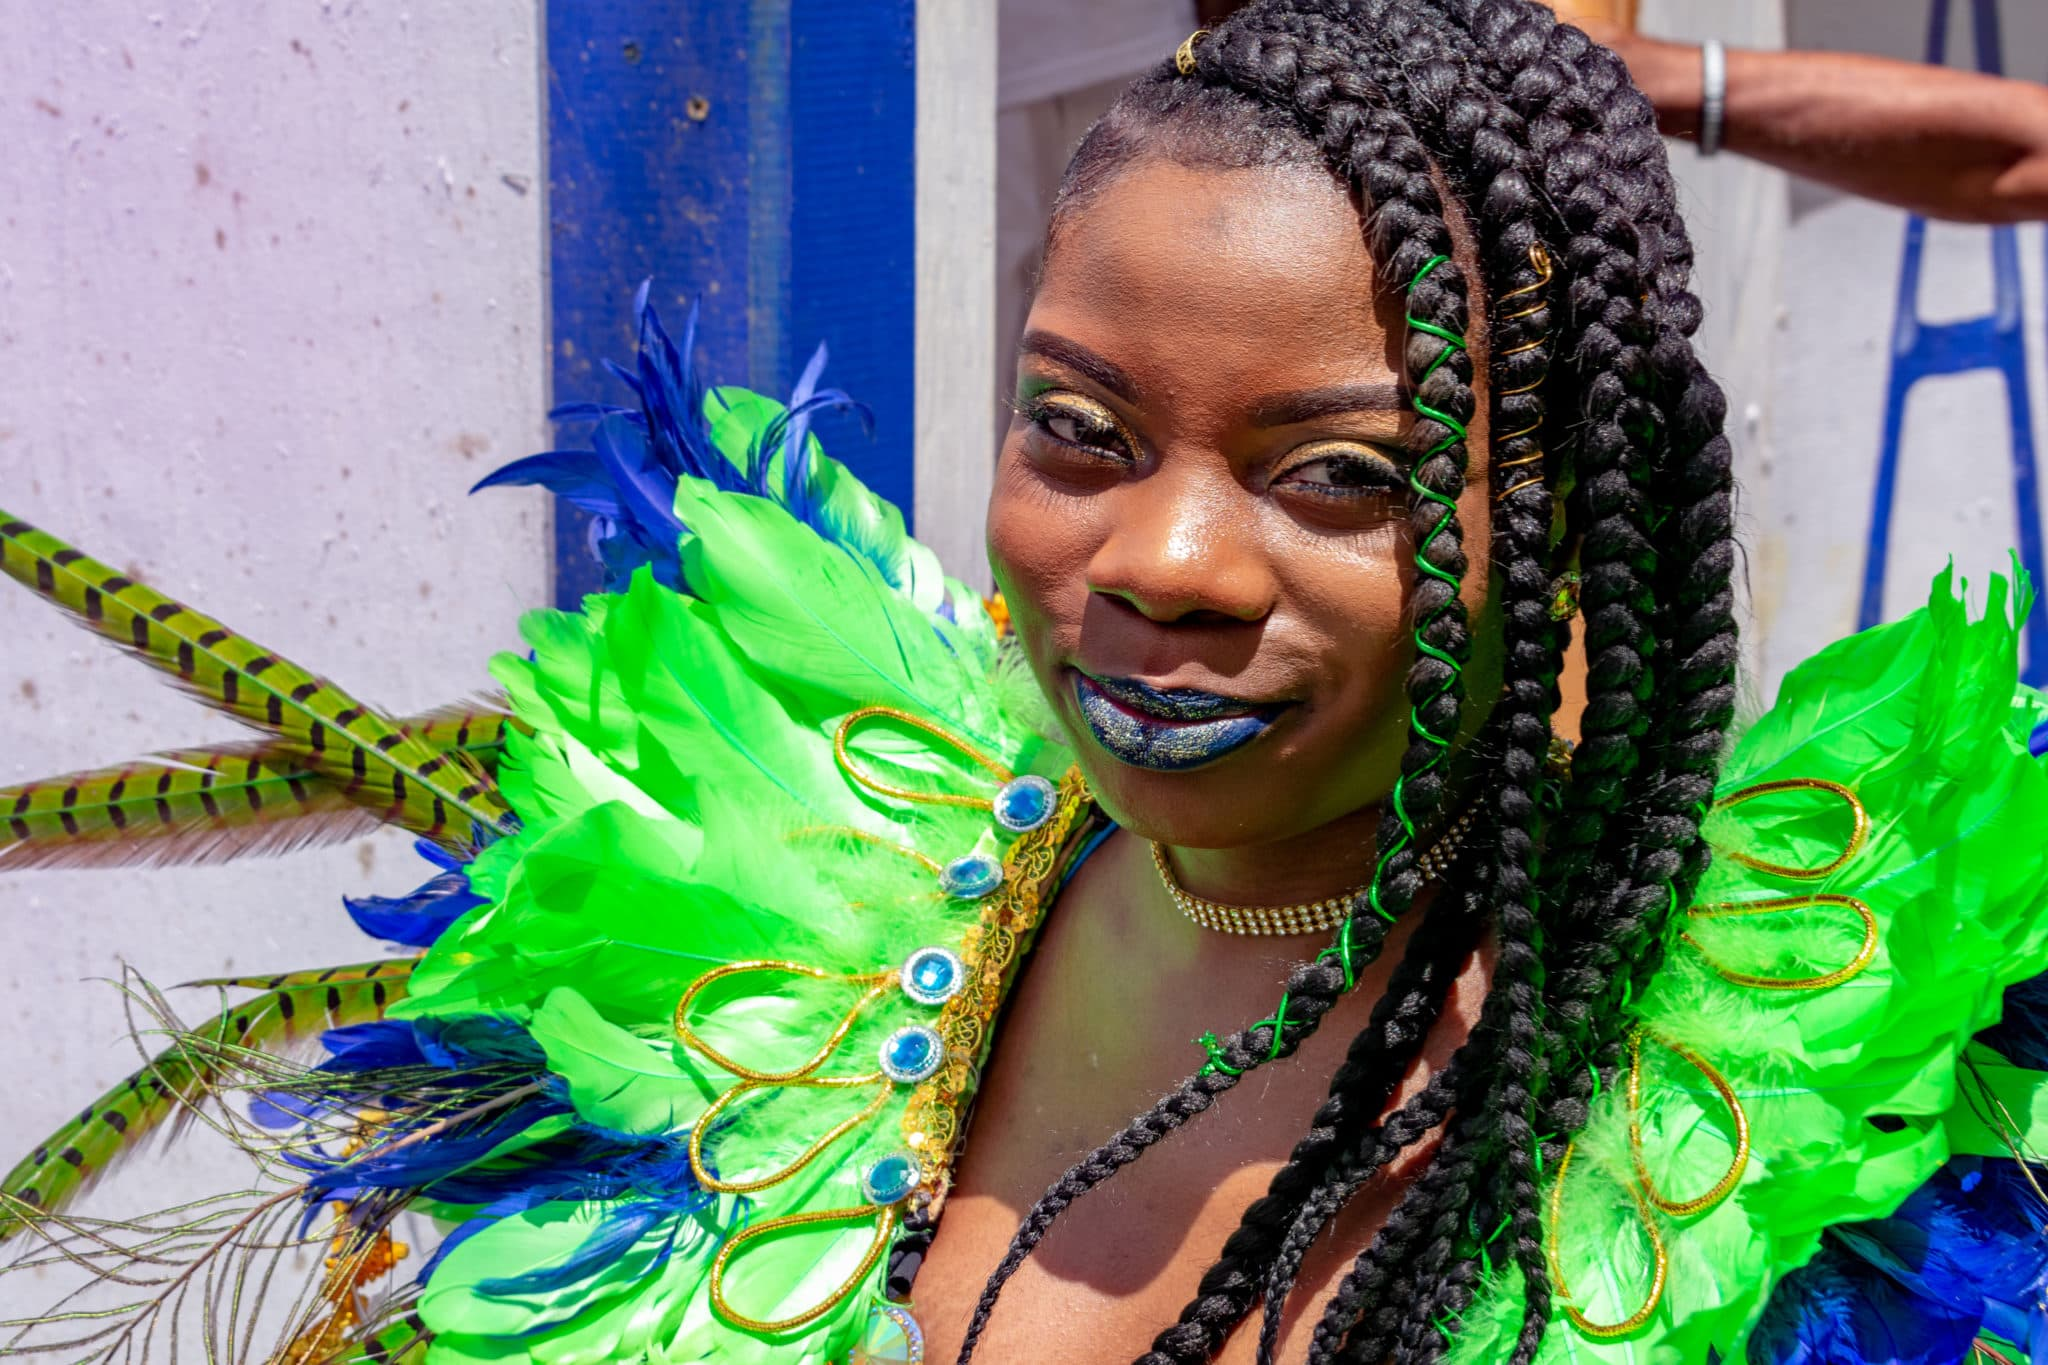 St. Croix St. Patrick's Day Parade – World's Sexiest